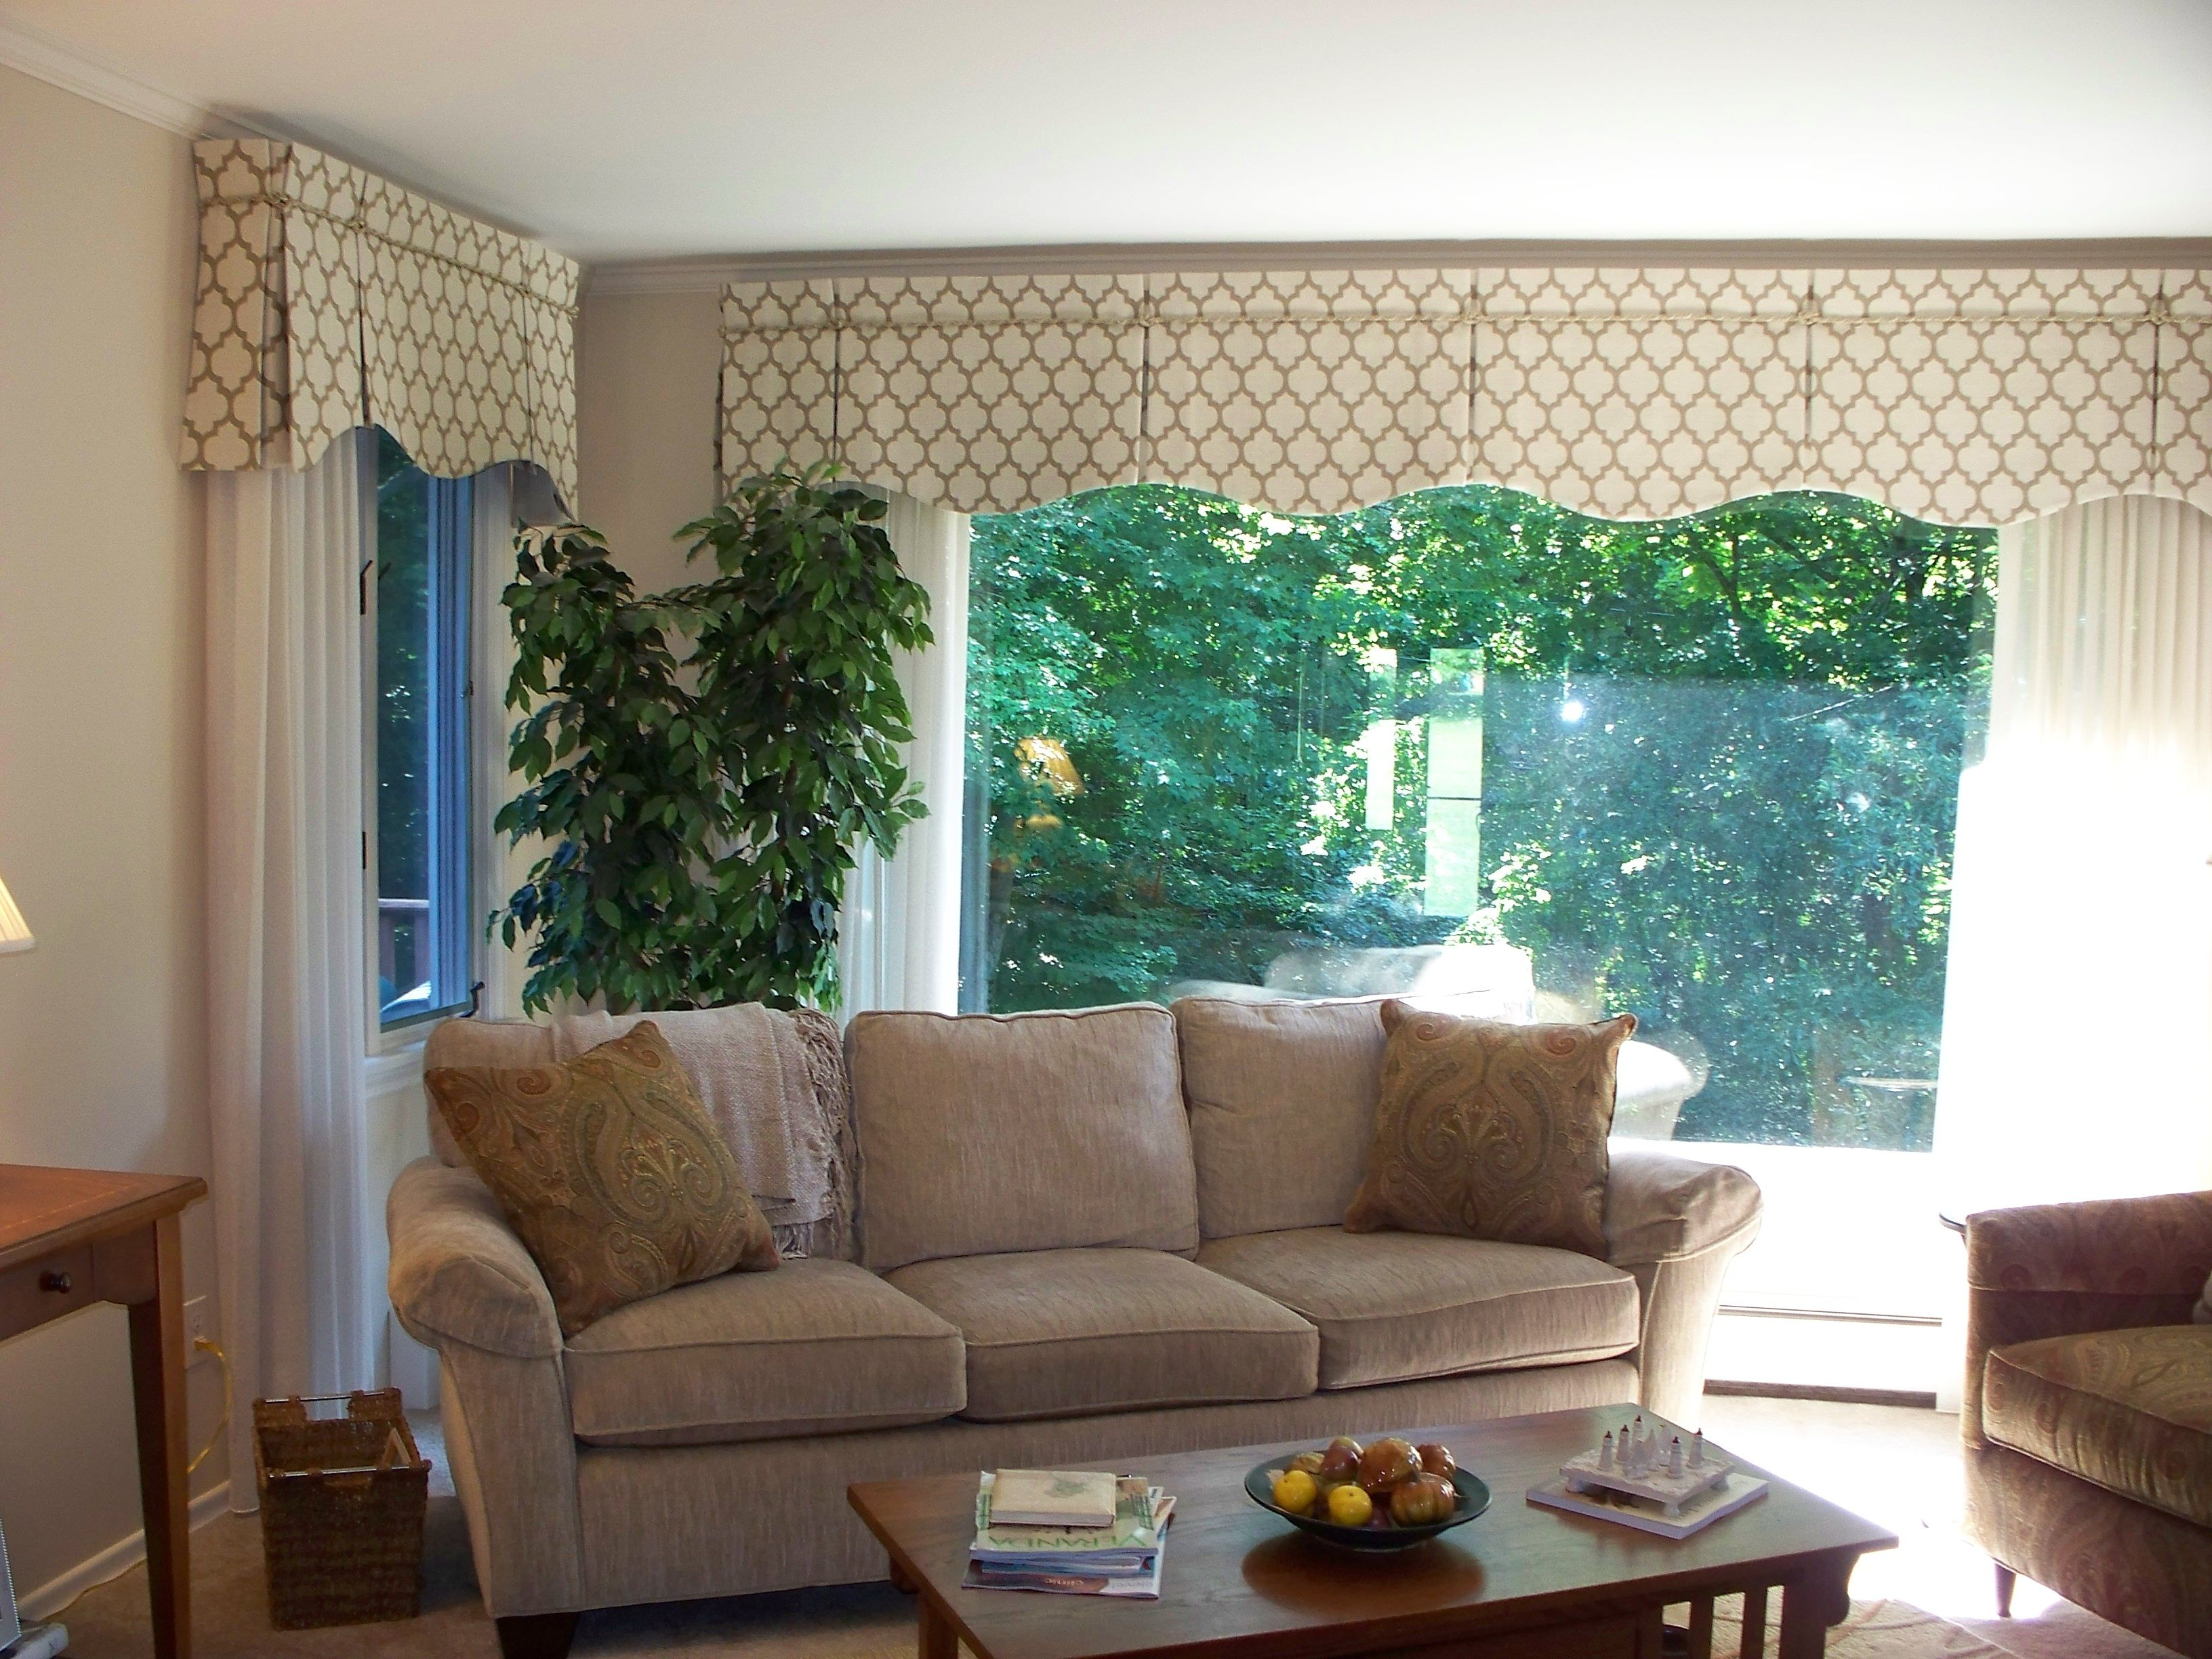 Box Pleated Valances You Have To Zoom In To See The